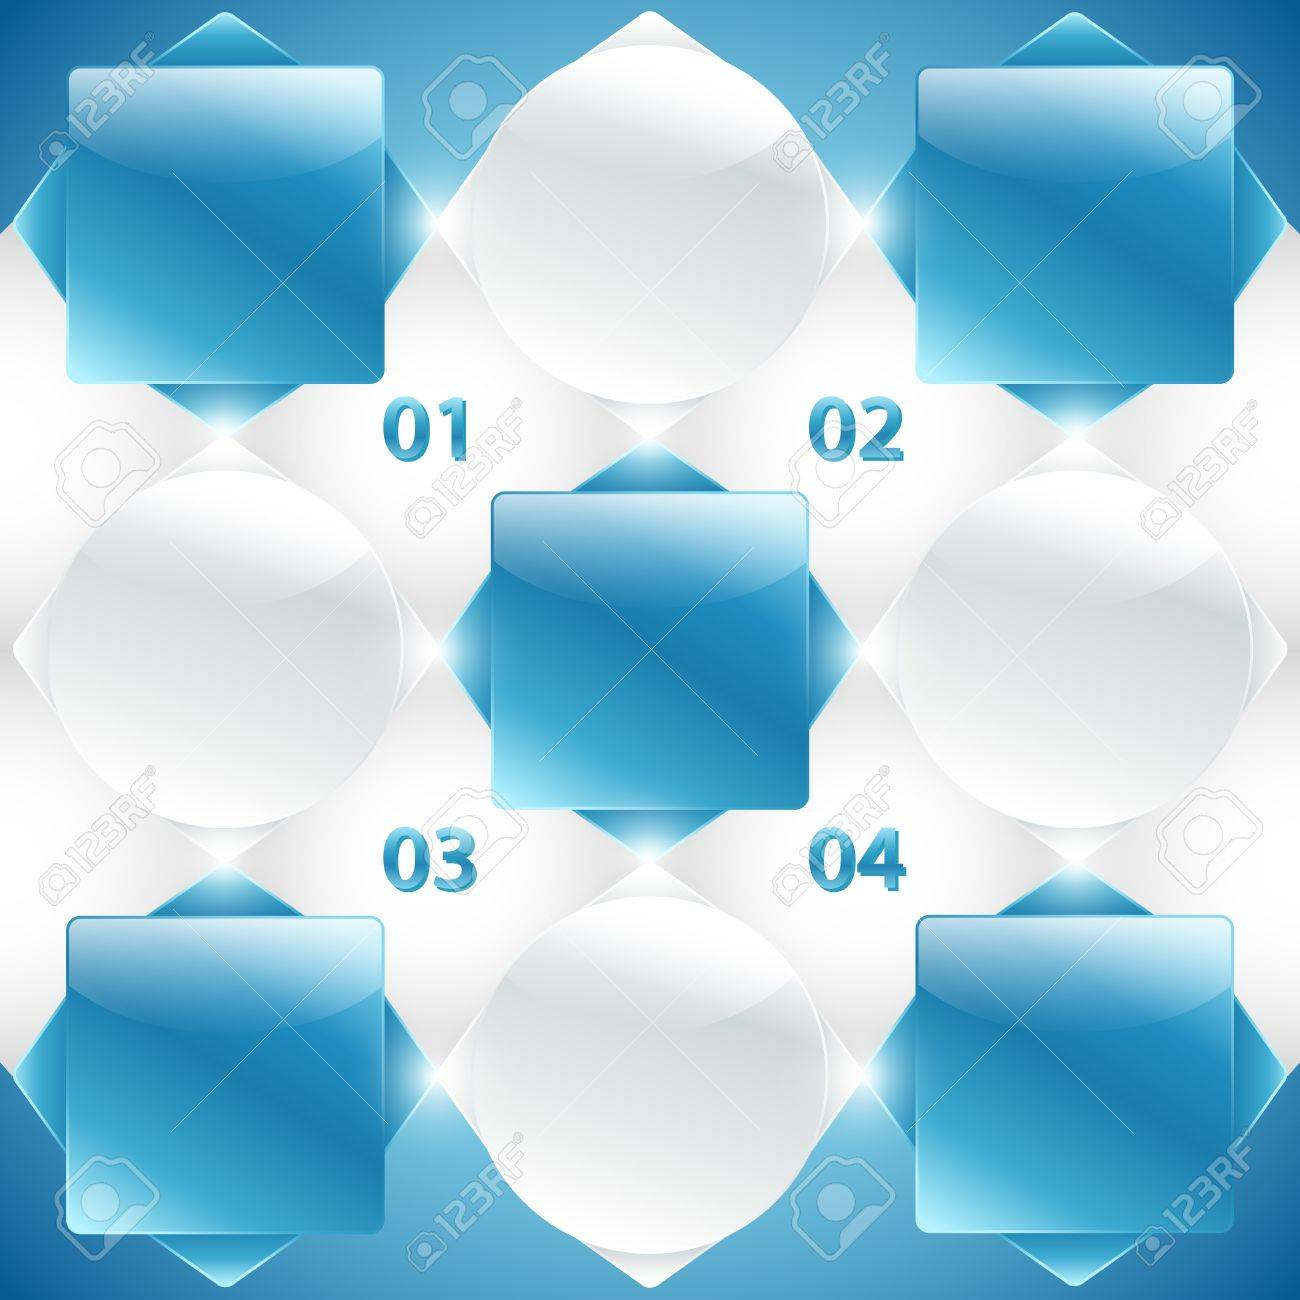 Abstract blue and white banners with info and numbers  Useful for banner design, business concept, website or web ad  Creative Illustration with numbers, arrows and place for text Stock Vector - 17567895